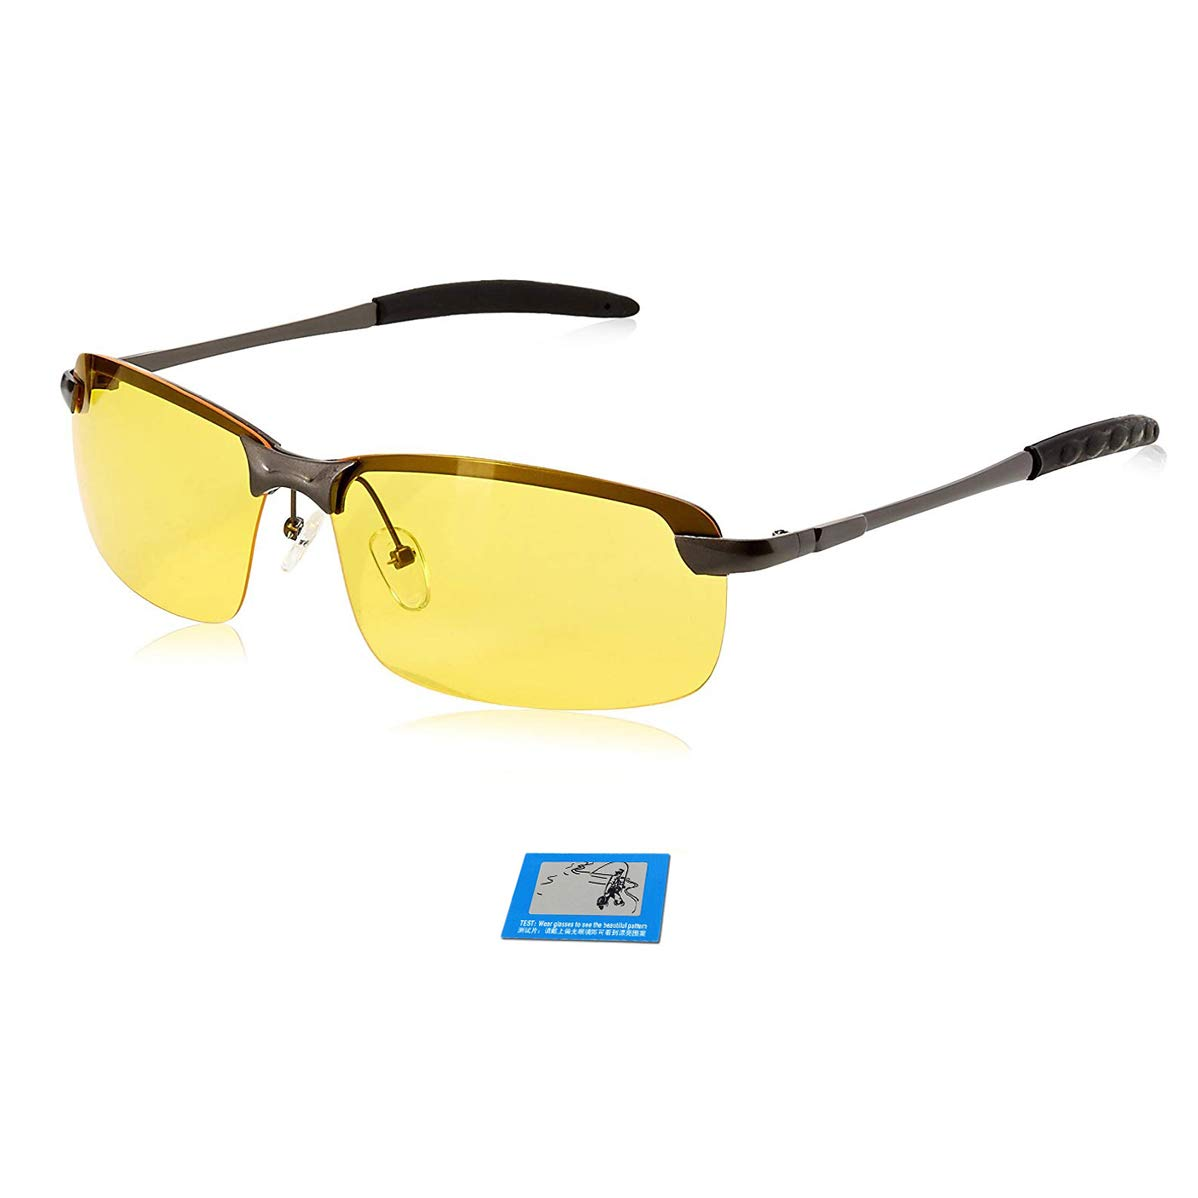 848f32c9d7fc MPRO-TECH UV 400 Anti Glare Night Vision Polarized Driving Unisex Glasses  (335082, 138, Yellow): Amazon.in: Clothing & Accessories